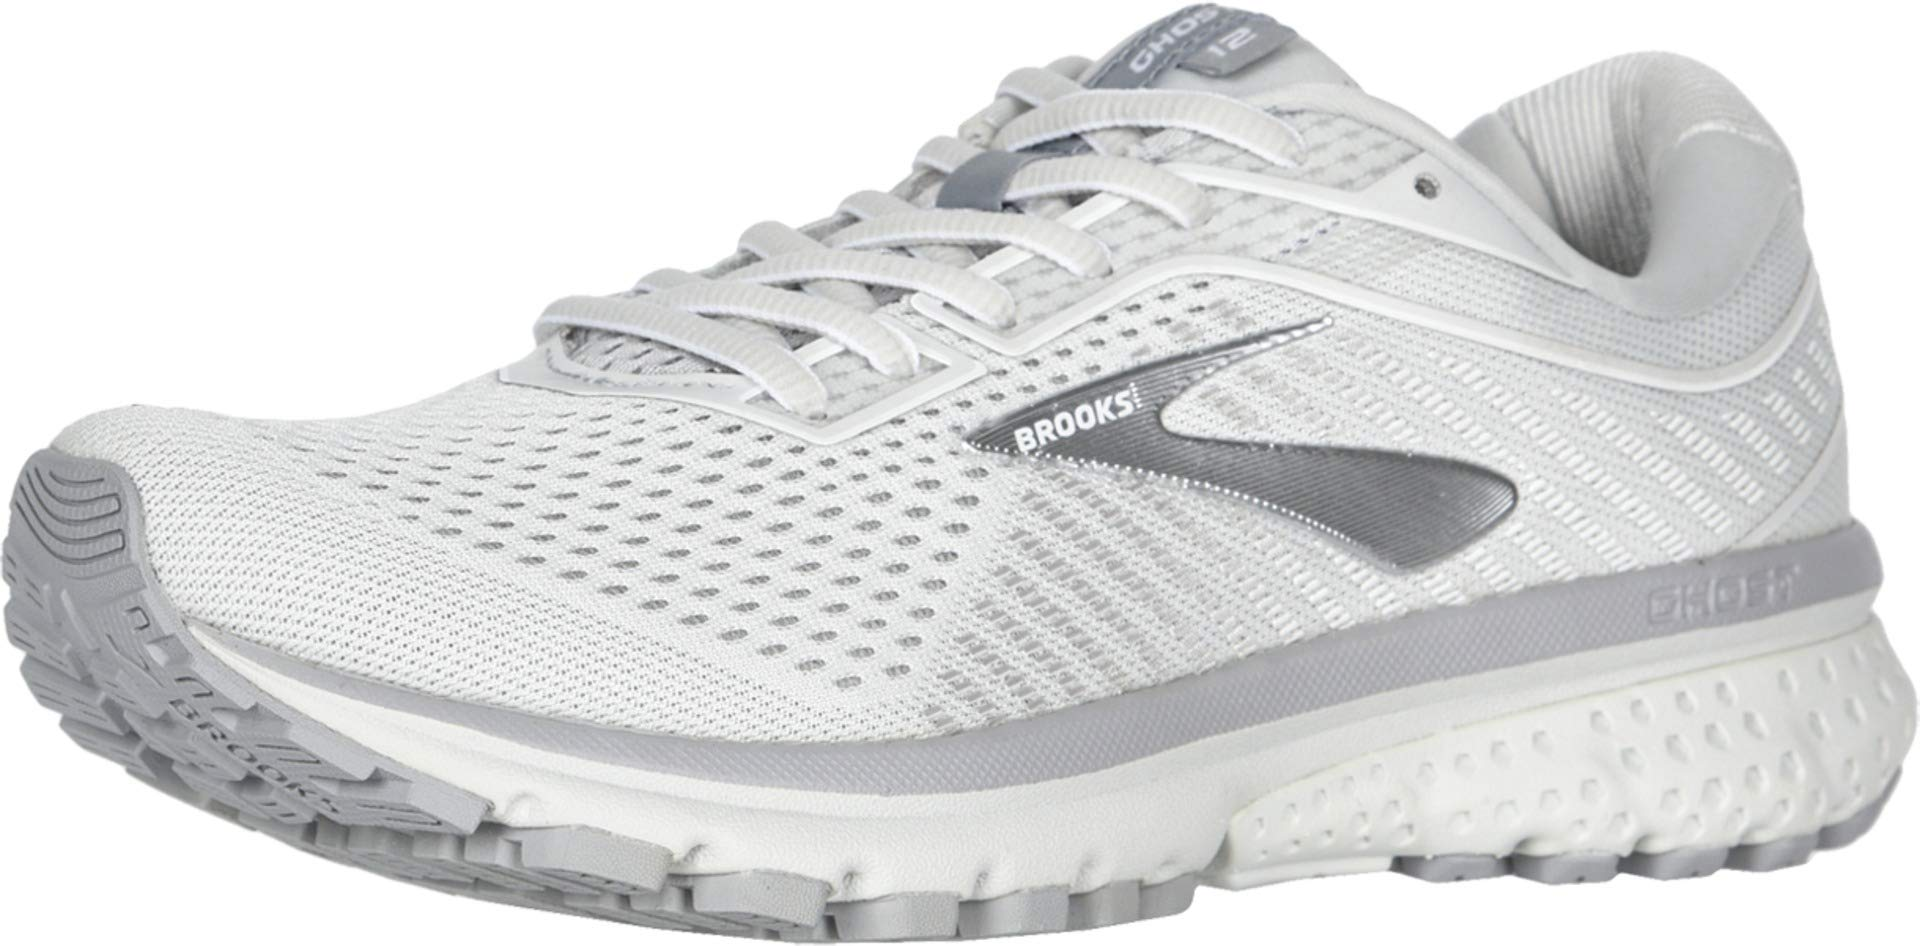 Brooks Ghost 12 Oyster/Alloy/White 9.5 by Brooks